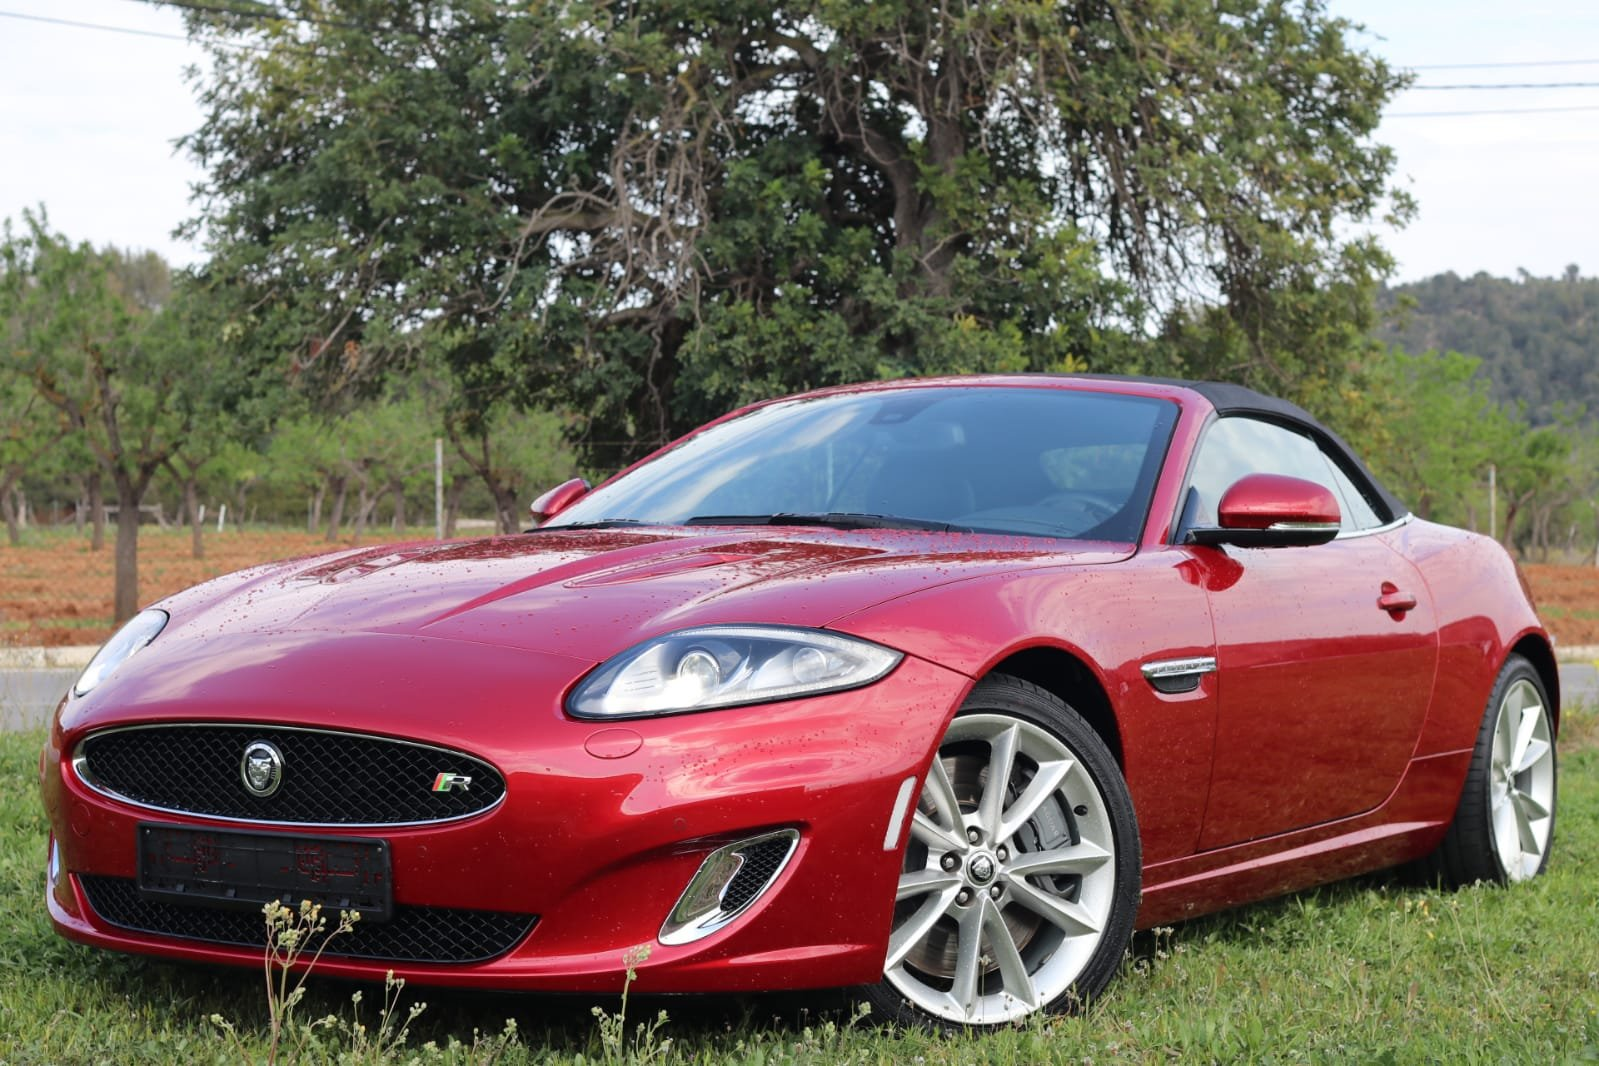 2013 LHD-Jaguar XKR 510PS - 1 of the few cabrios in red For Sale (picture 1 of 6)